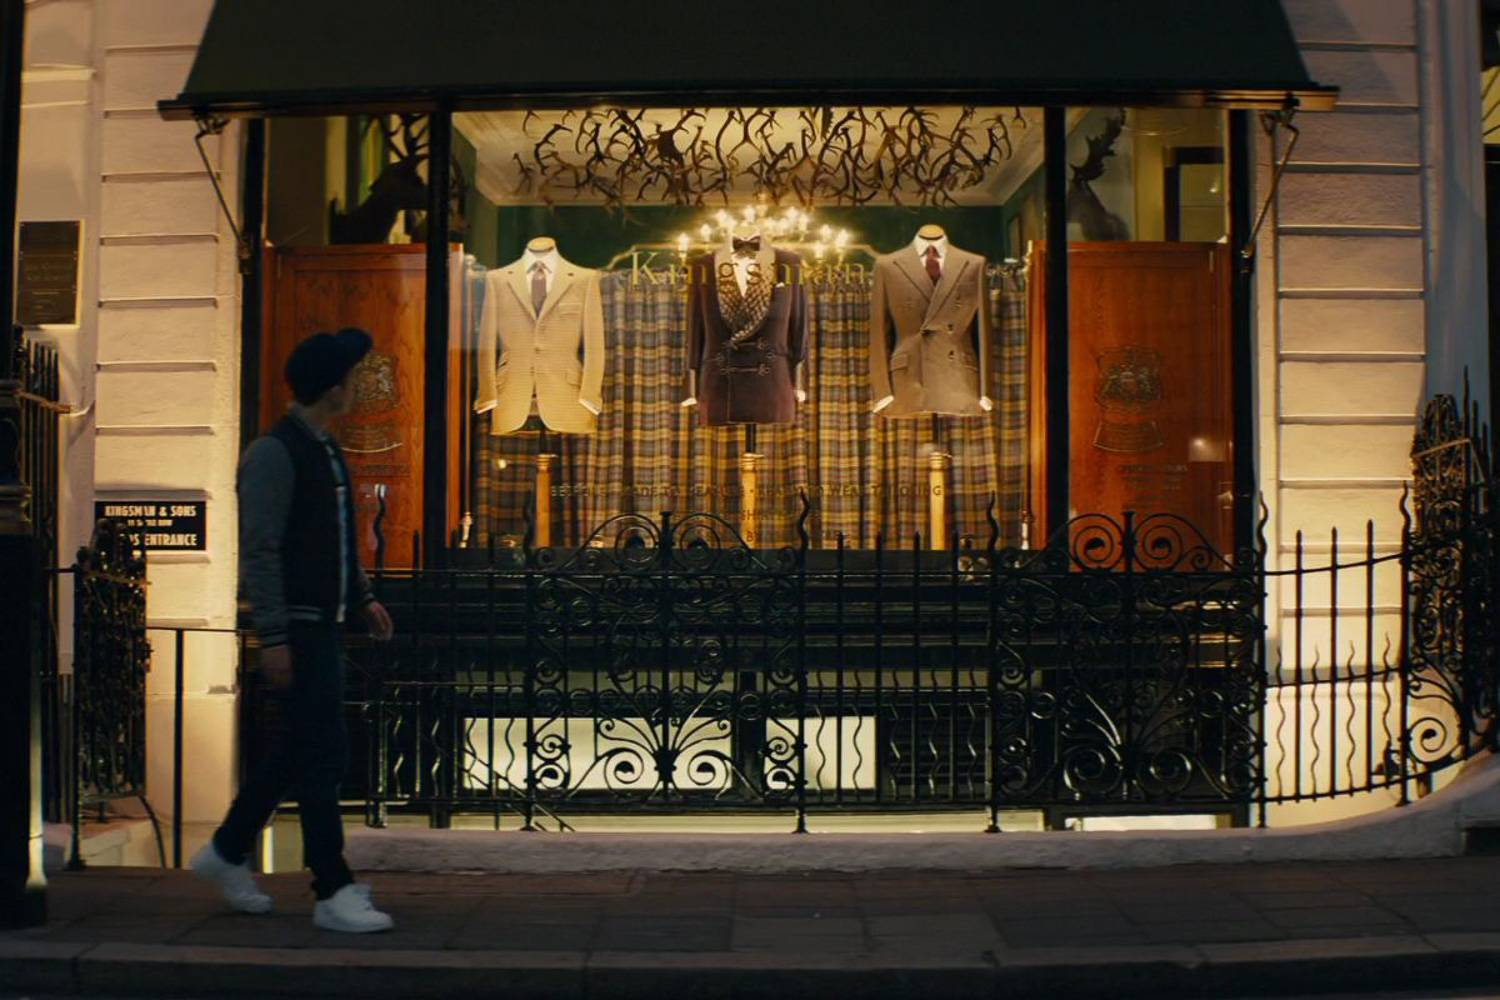 Image still of actor Taron Egerton walking on the street in front of the Kingsman headquarters in Kingsman: The Secret Service.